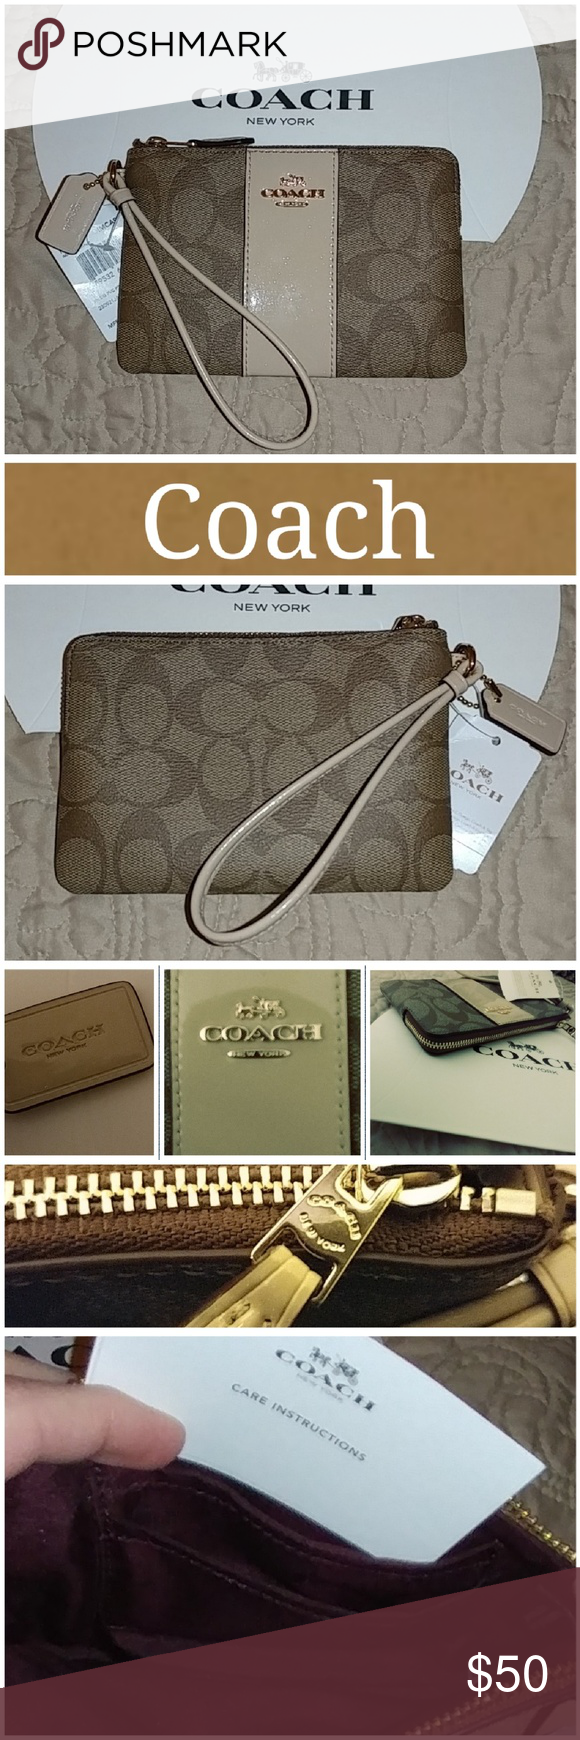 NWT Coach Wristlet! Signature Coach wristlet.  Corner zip closure.  Khaki platinim. Gold tone hardware.  Wrist strap.  Two credit cards pockets inside.  Excellent condition.  Never used.  From smoke free home. LOC CL2-2 Coach Bags Clutches & Wristlets